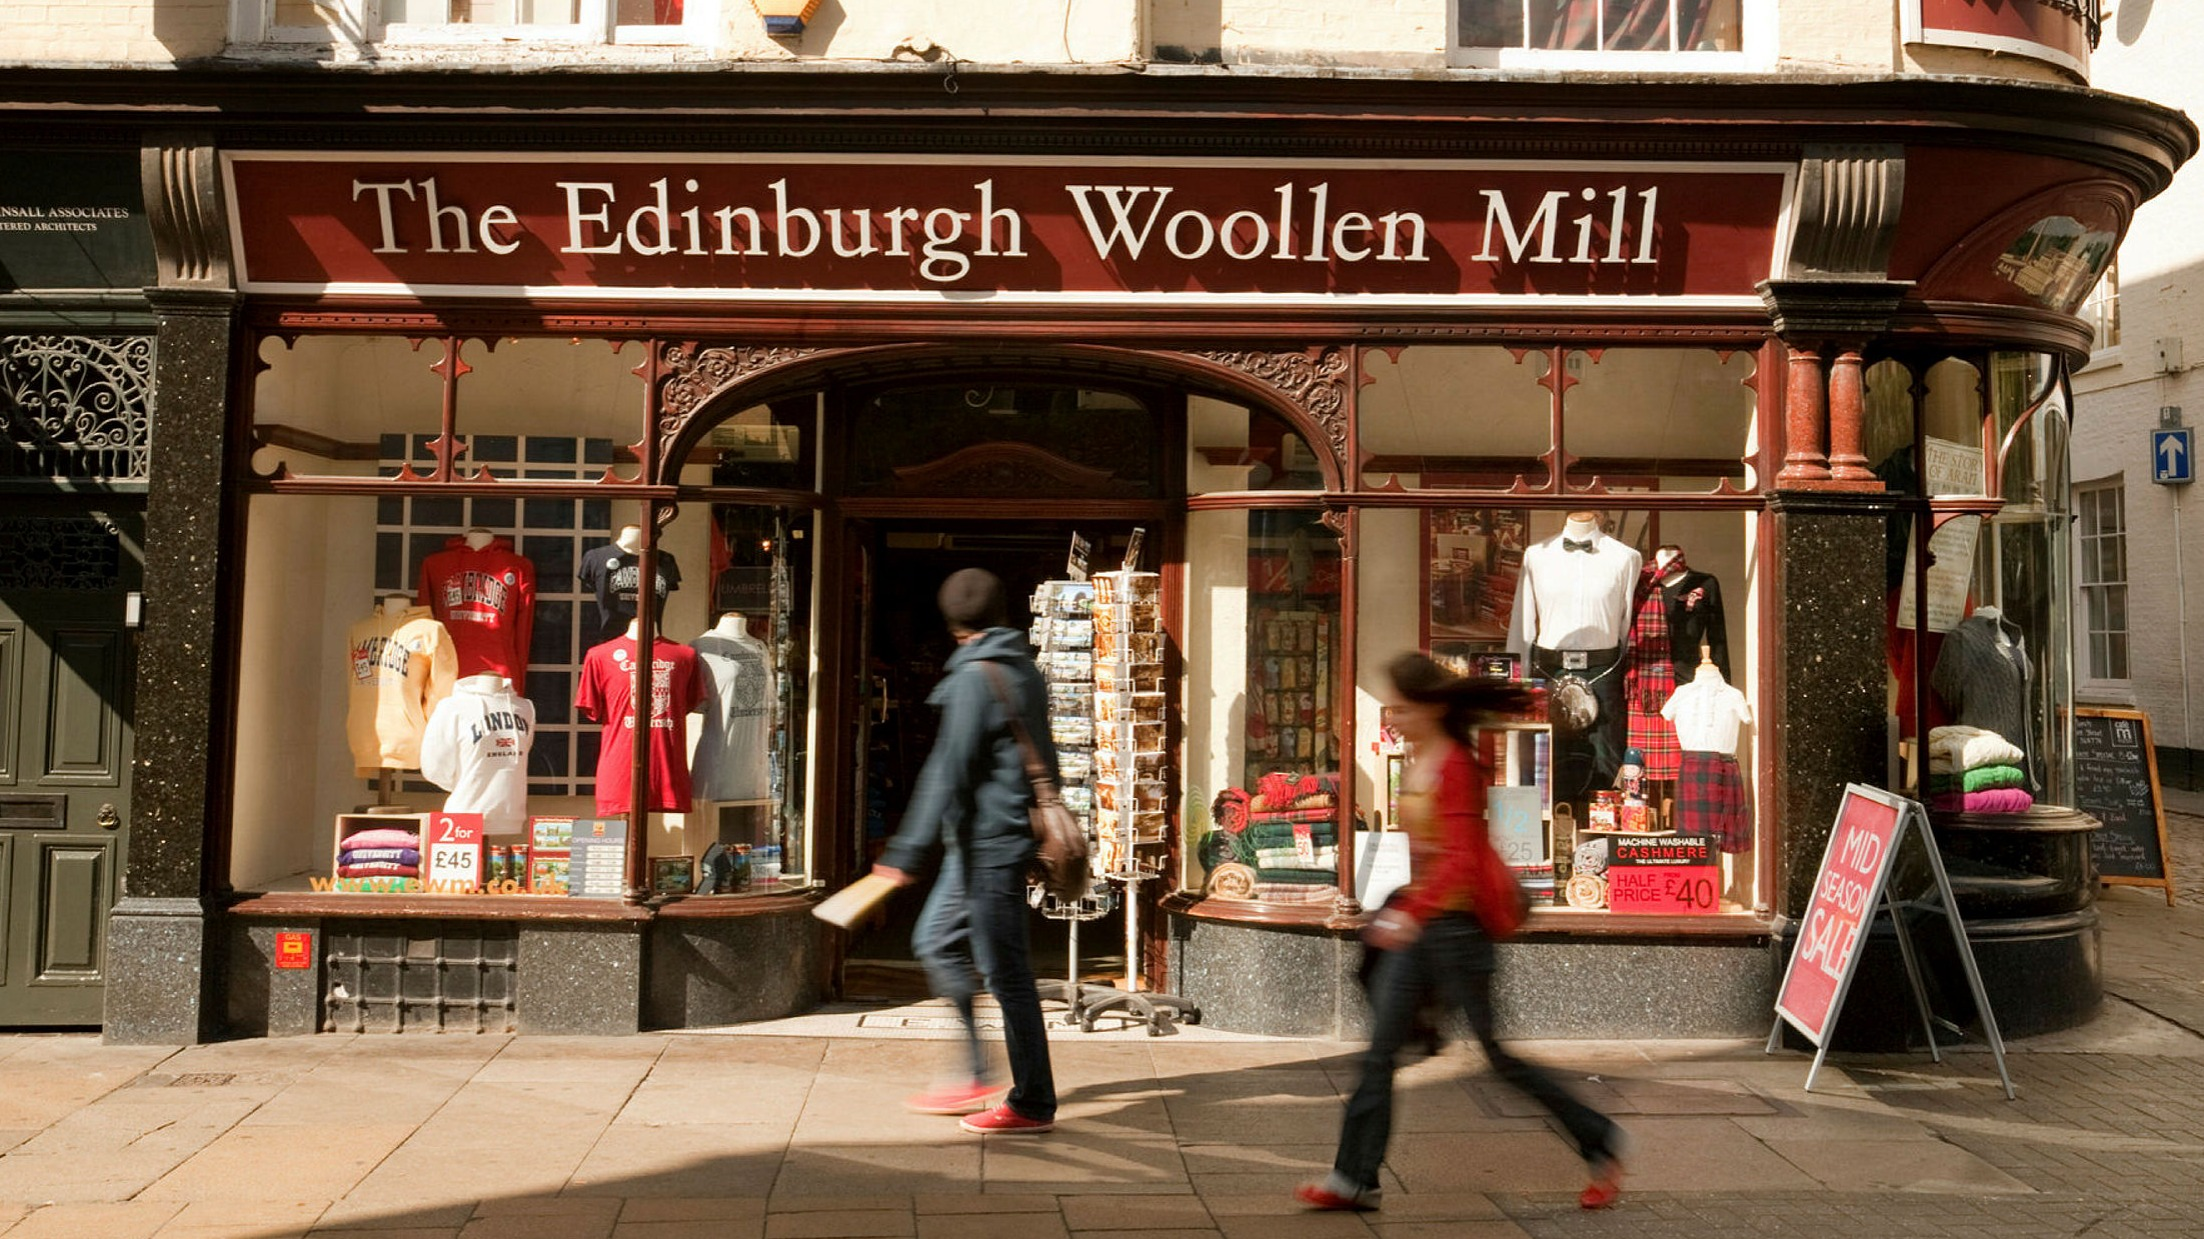 Edinburgh Woolen Mill To Make Job Cuts Retail Leisure International